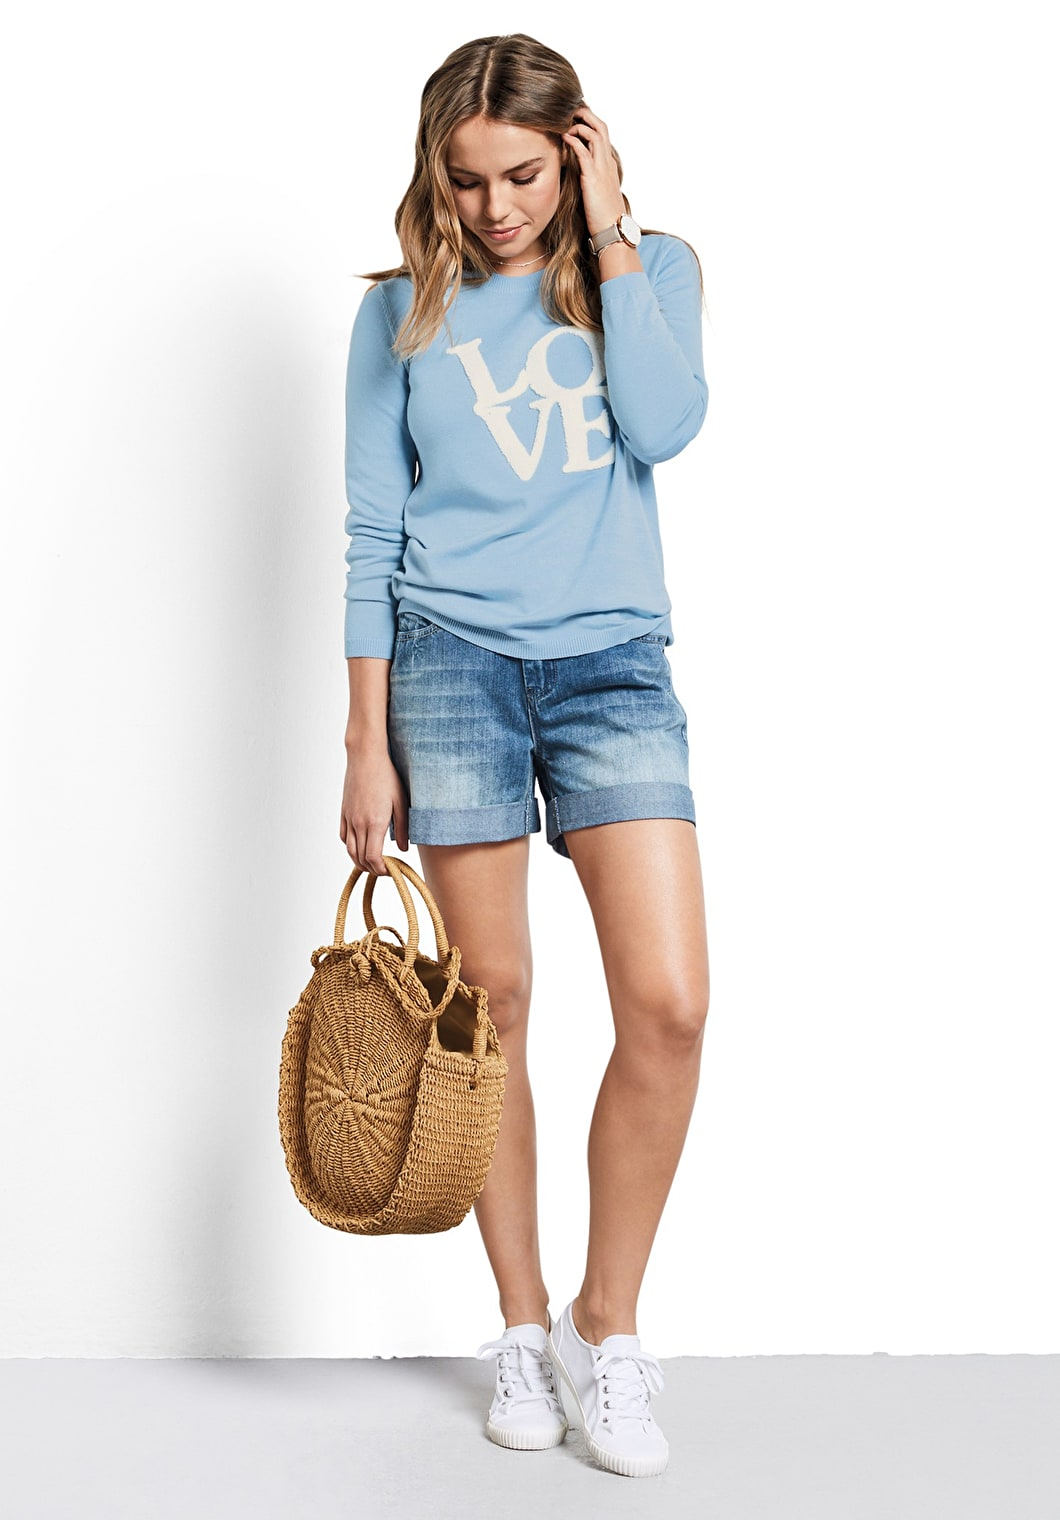 Model wears our classic knit with a 60's inspired motif of 'Love' in baby blue and white